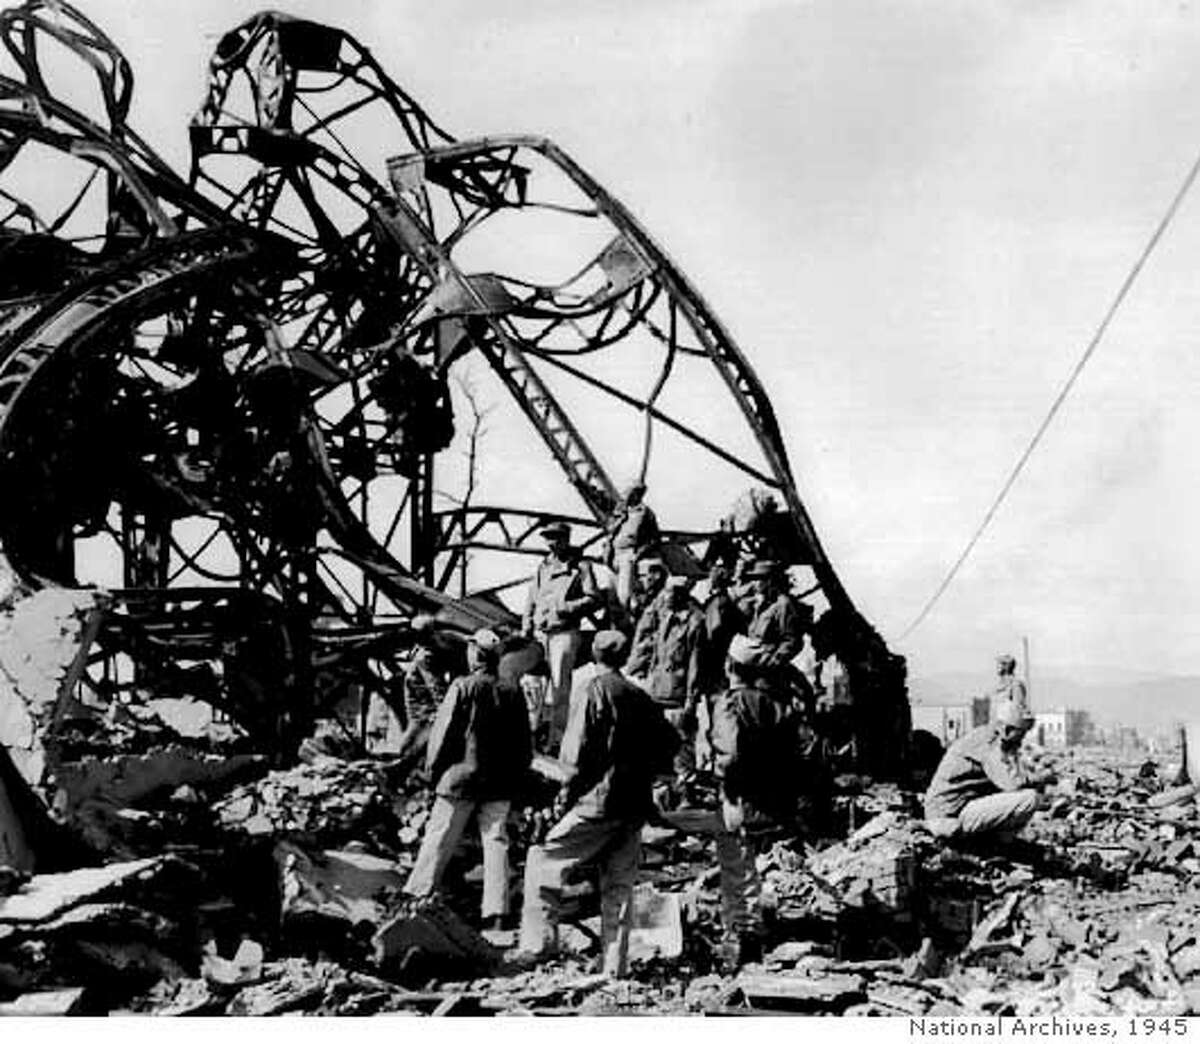 GIs of the 99th Signal Battalion in Hiroshima look at the steel skeleton of a building destroyed by the atomic bomb on Aug. 6, 1945. Saturday will mark the 60th anniversary of the dropping of the bomb on Hiroshima. National Archives Photo, 1945